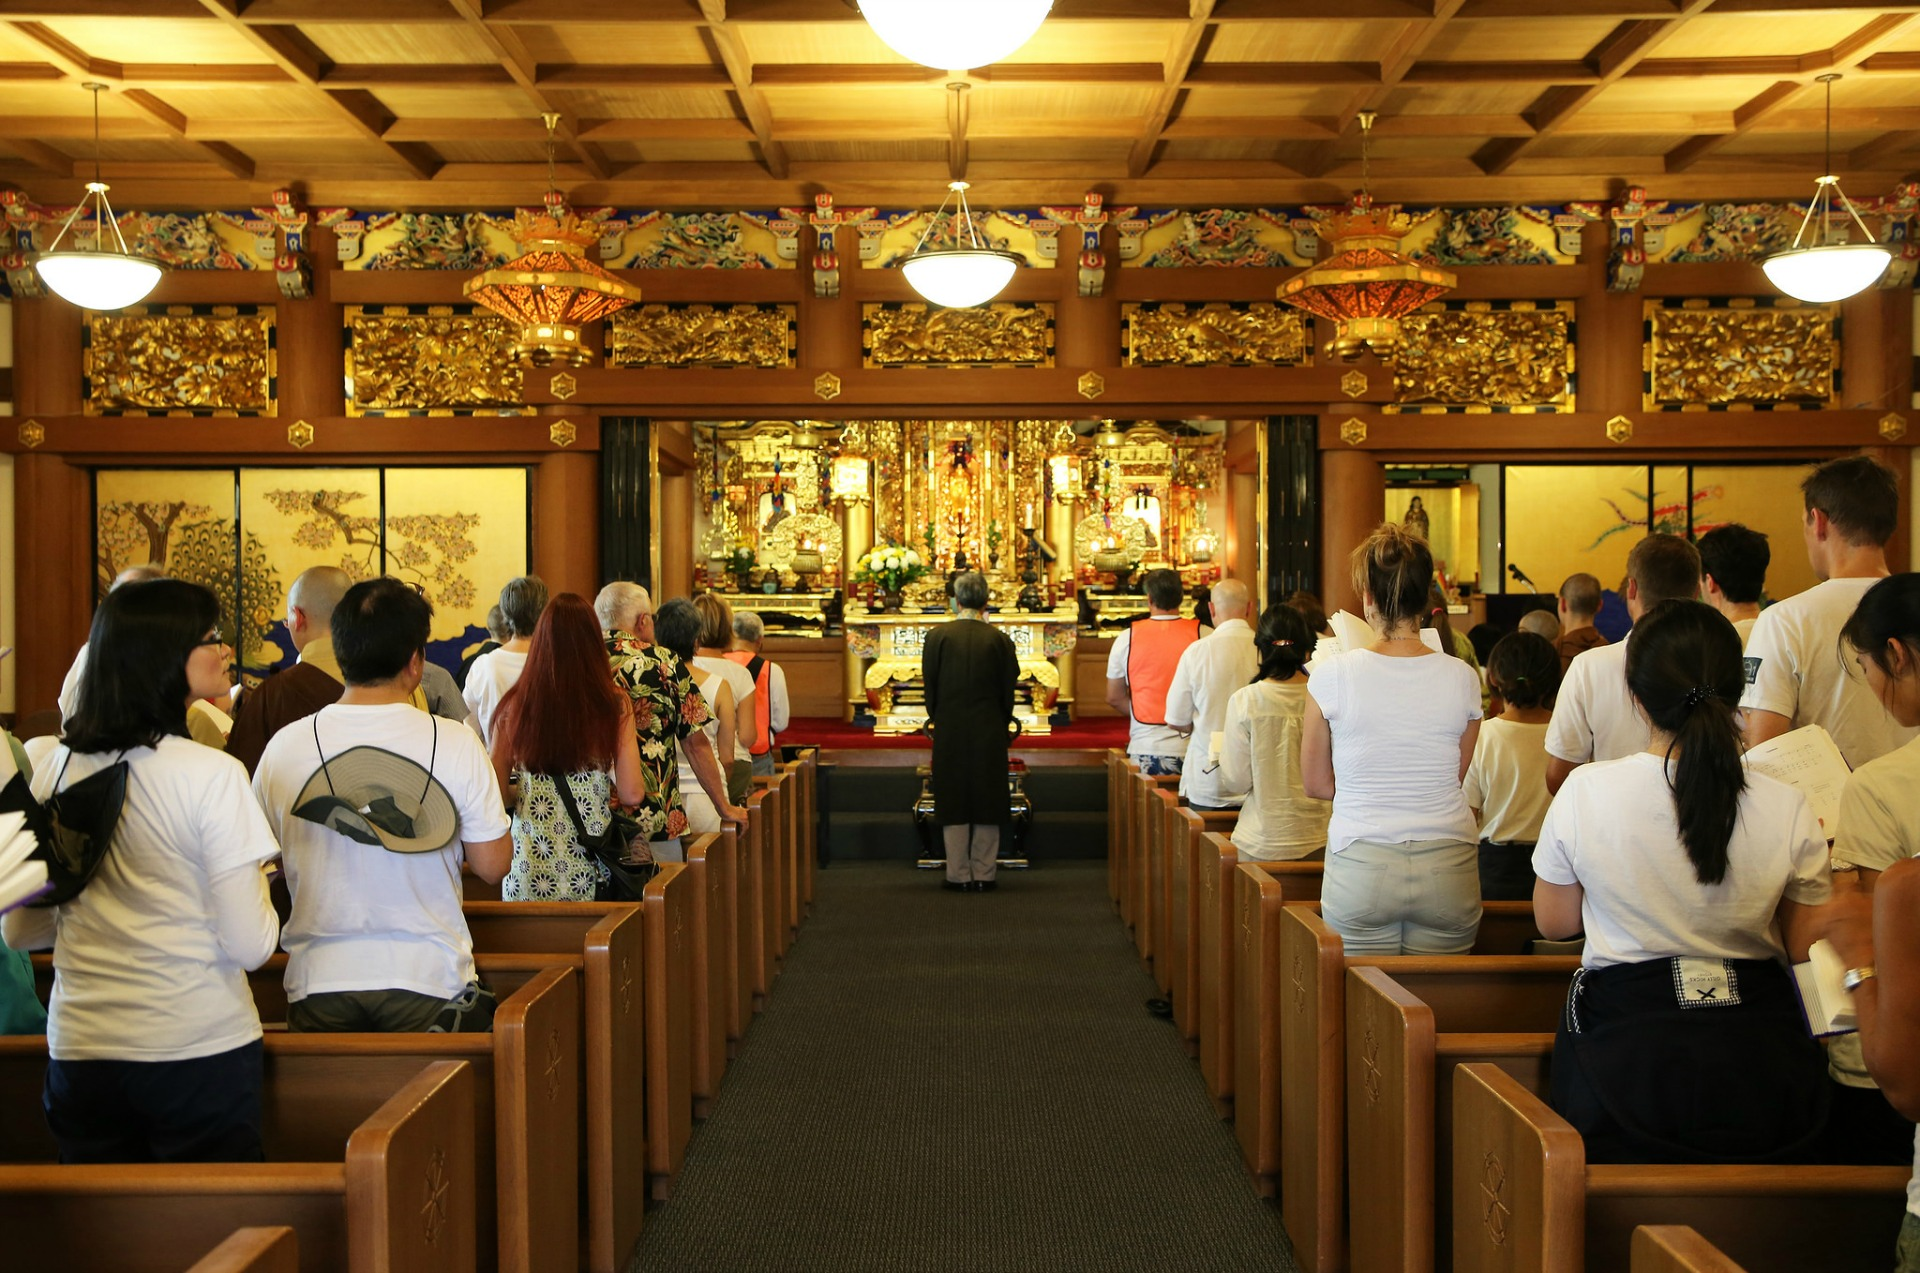 Last year's group at the Buddhist Church of San Francisco, where Rev. Ronald K. Kobata is leading them in devotional chanting